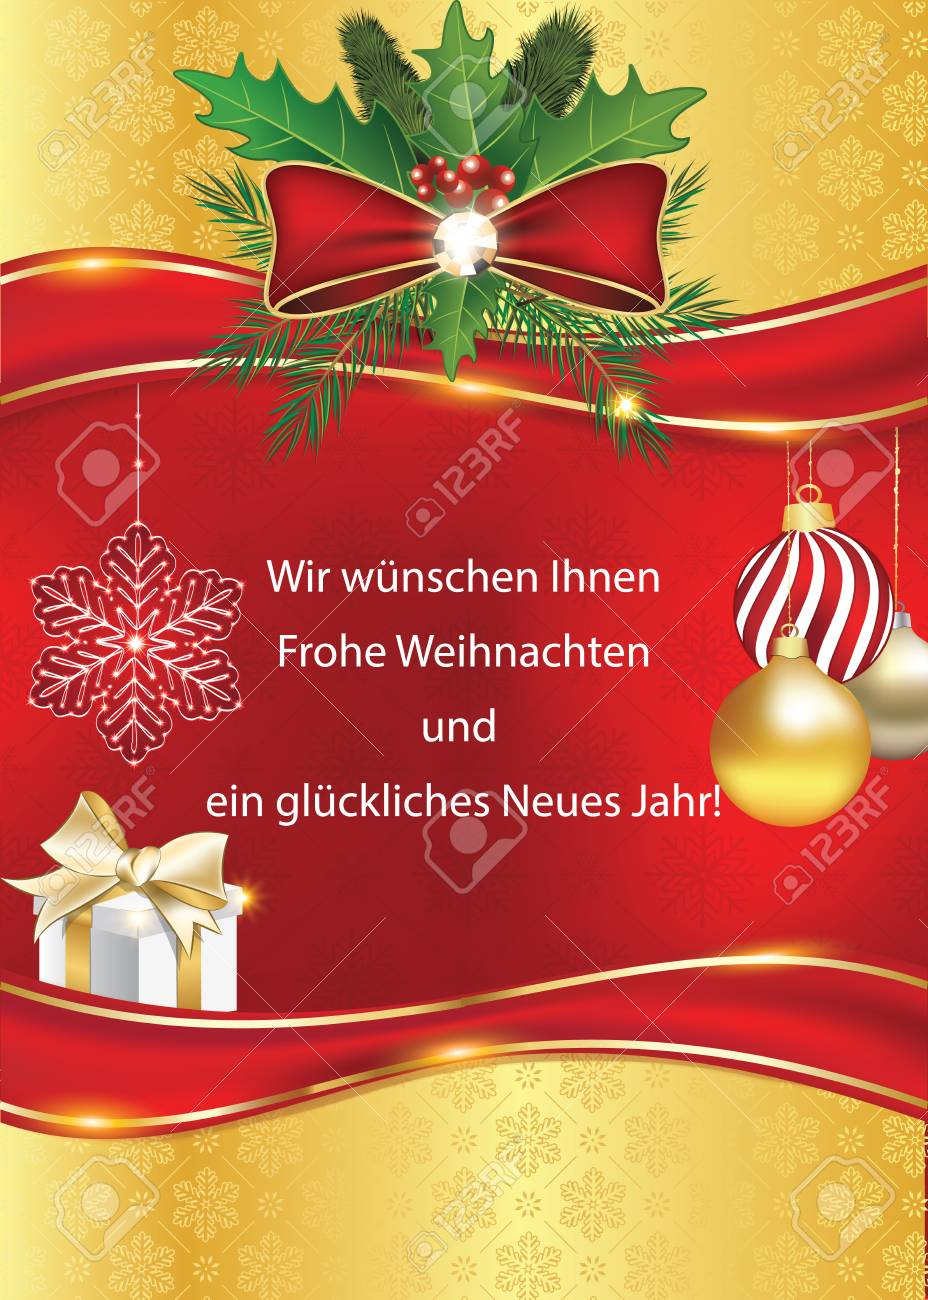 Greeting Card For The Year With Text In German Language: We Wish - Free Printable German Christmas Cards